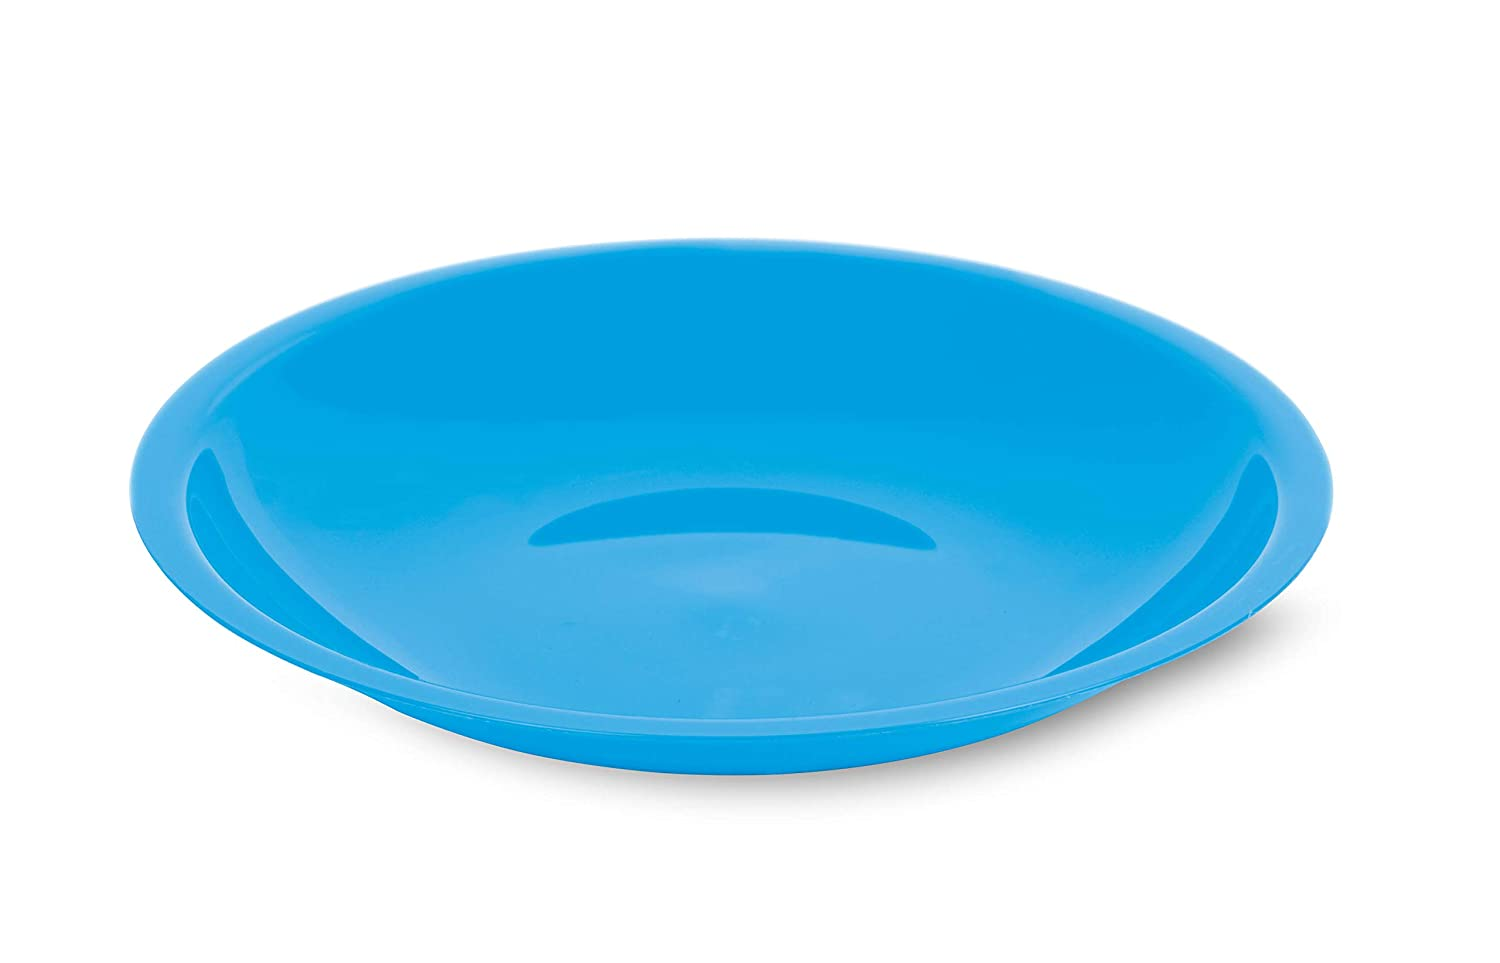 , Blue 13.75in Round Serving Plate 2pk Mintra Home Plastic Serving Trays